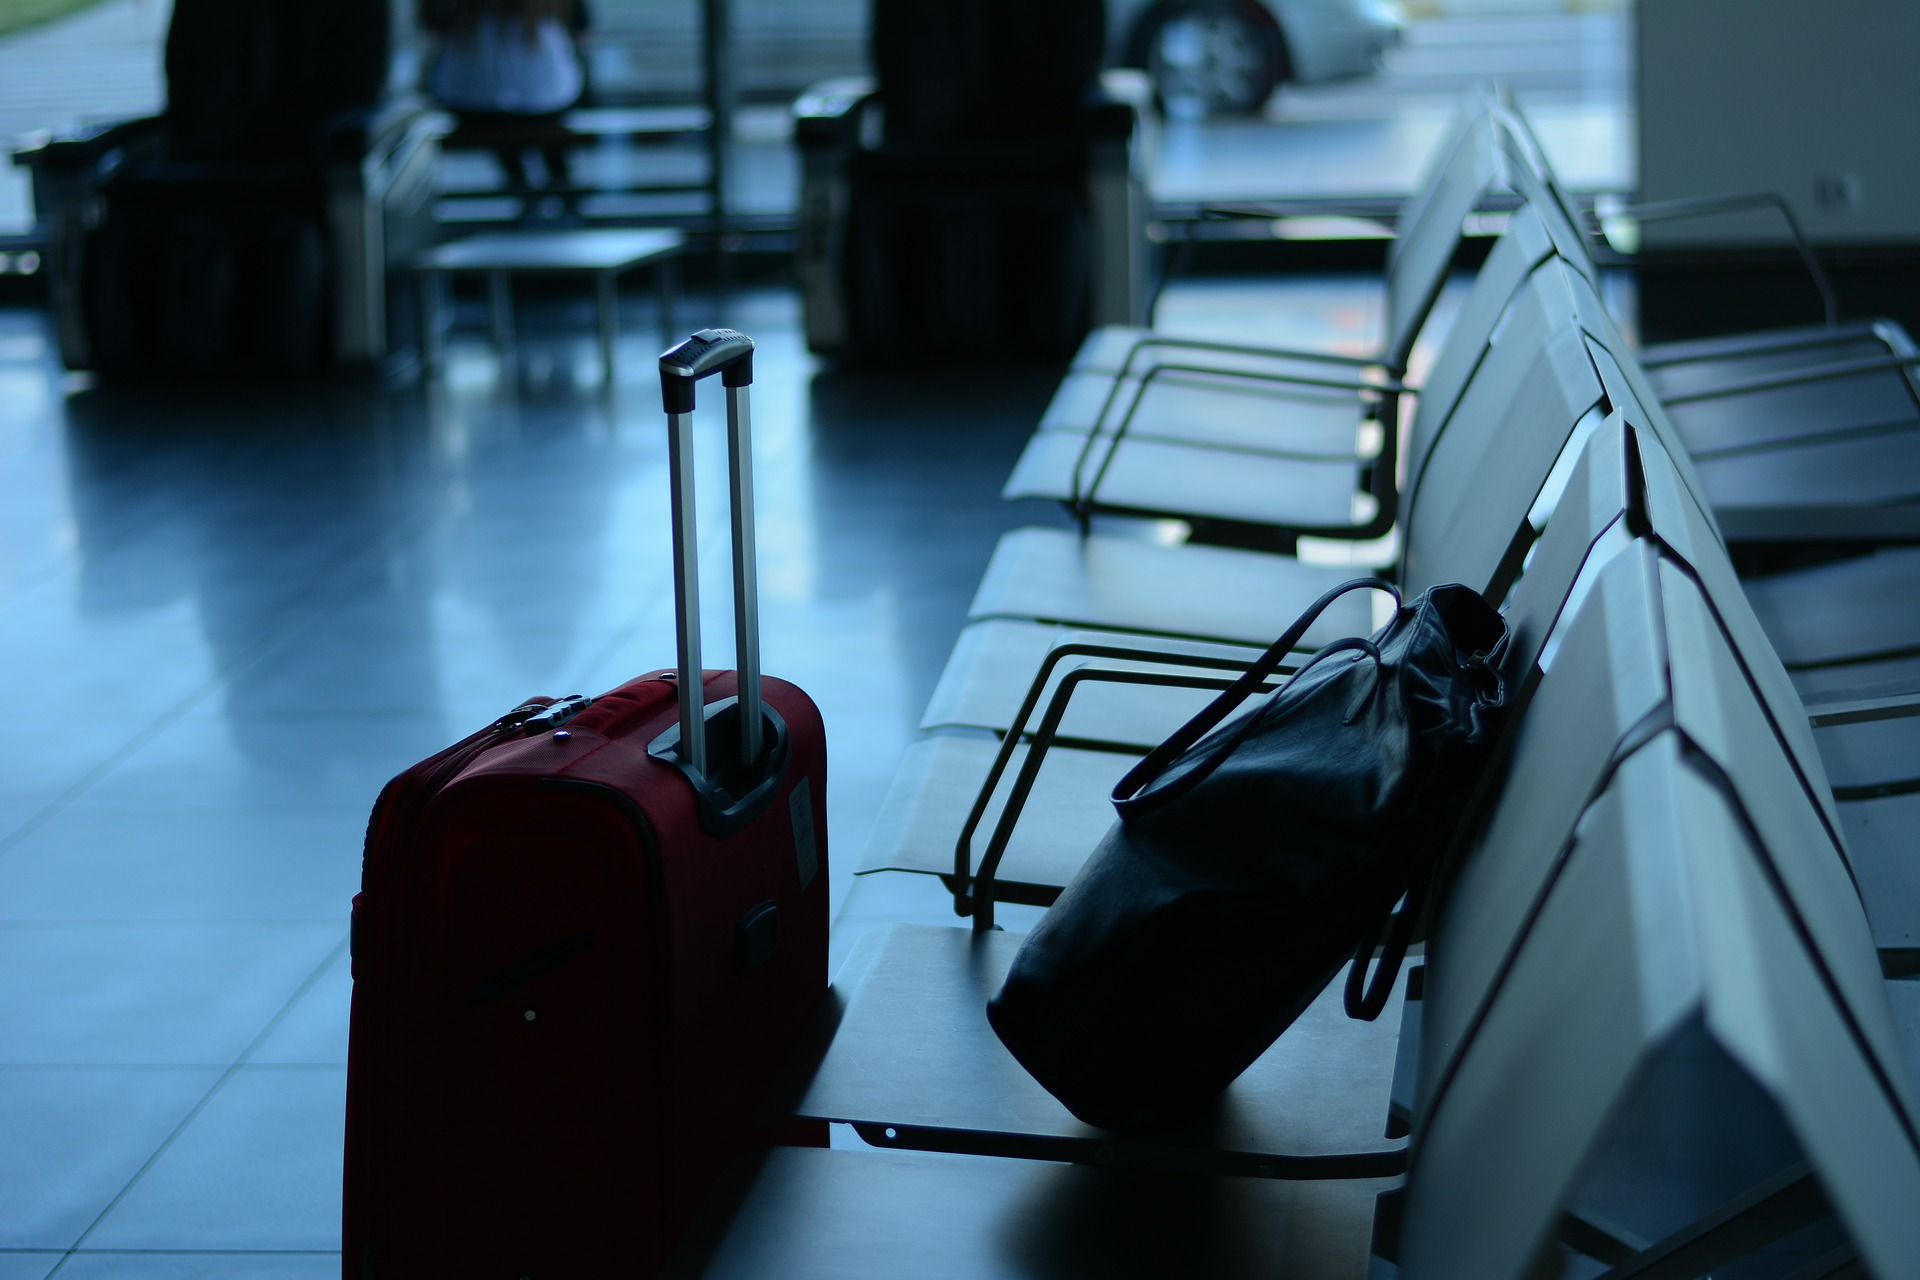 Essential Things To Pack While Travelling